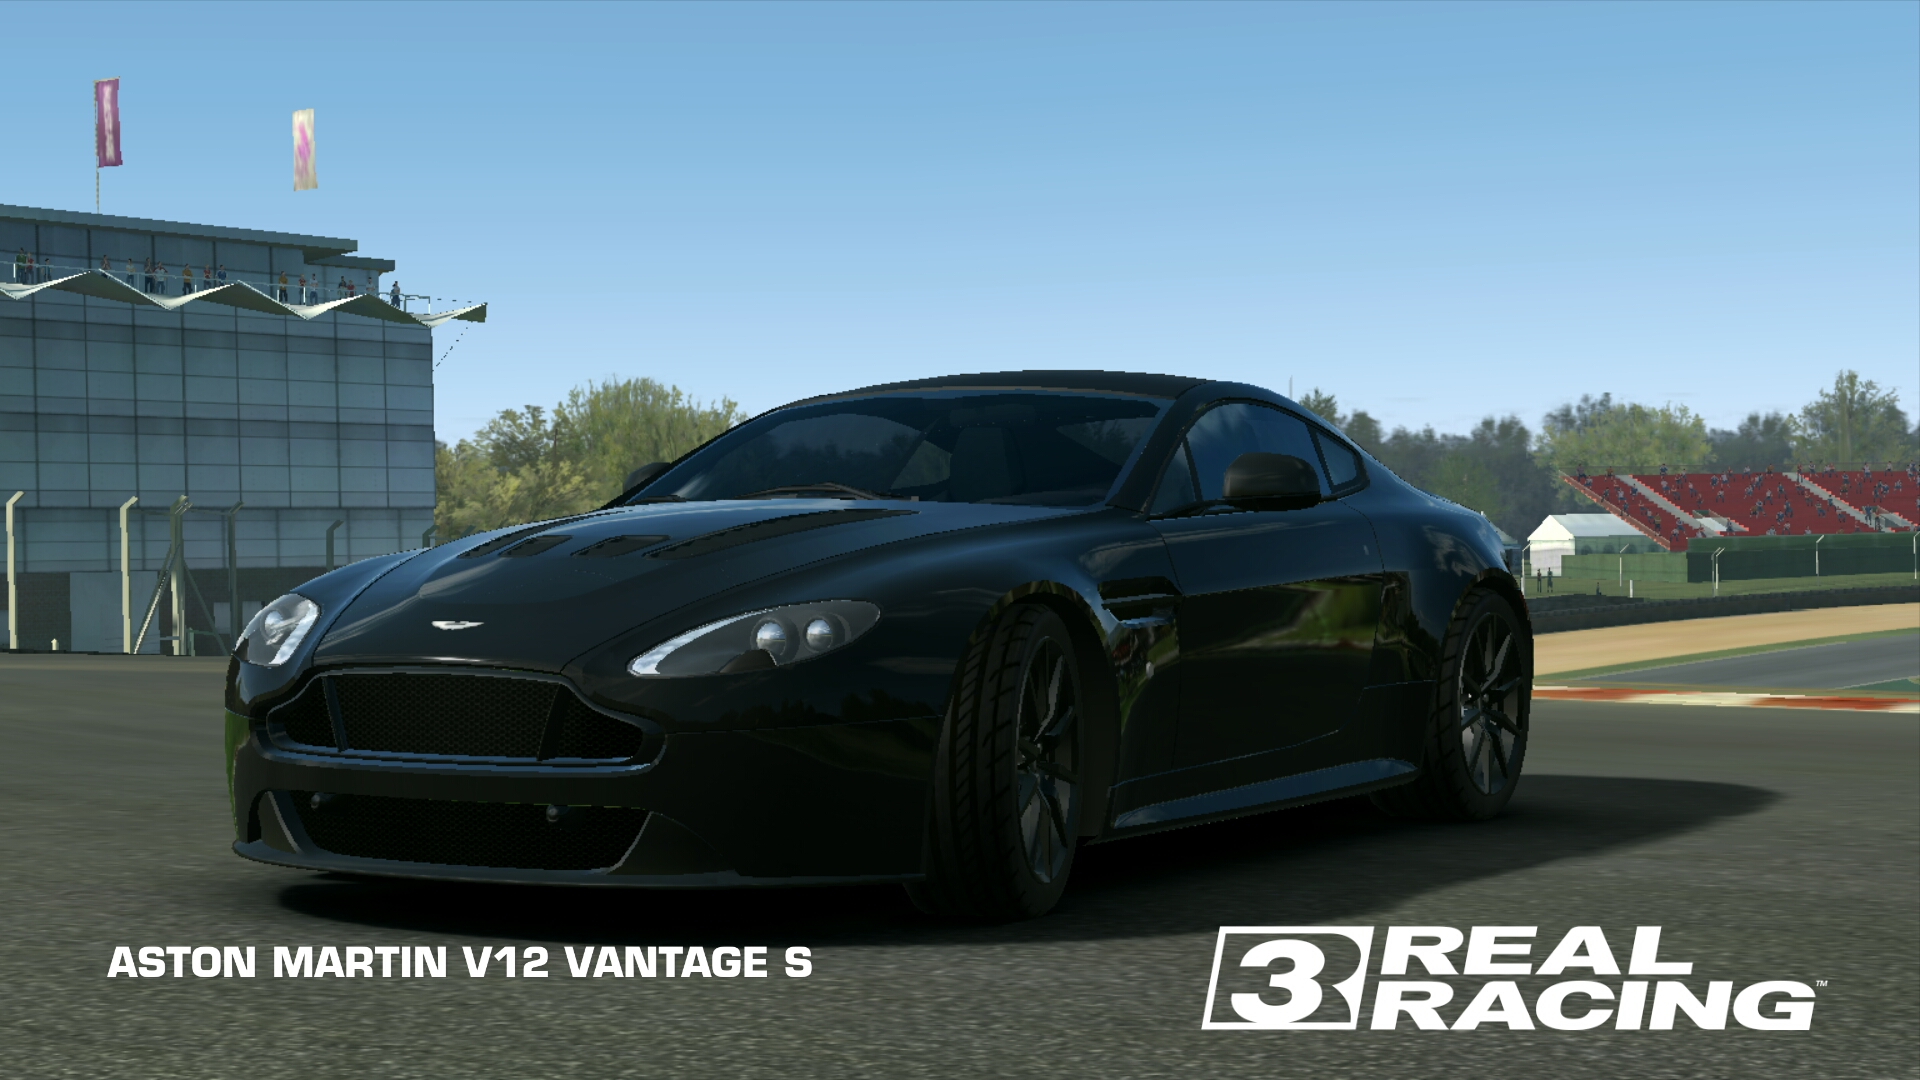 ASTON MARTIN V VANTAGE S Real Racing Wiki FANDOM Powered By - Aston martin vantage s